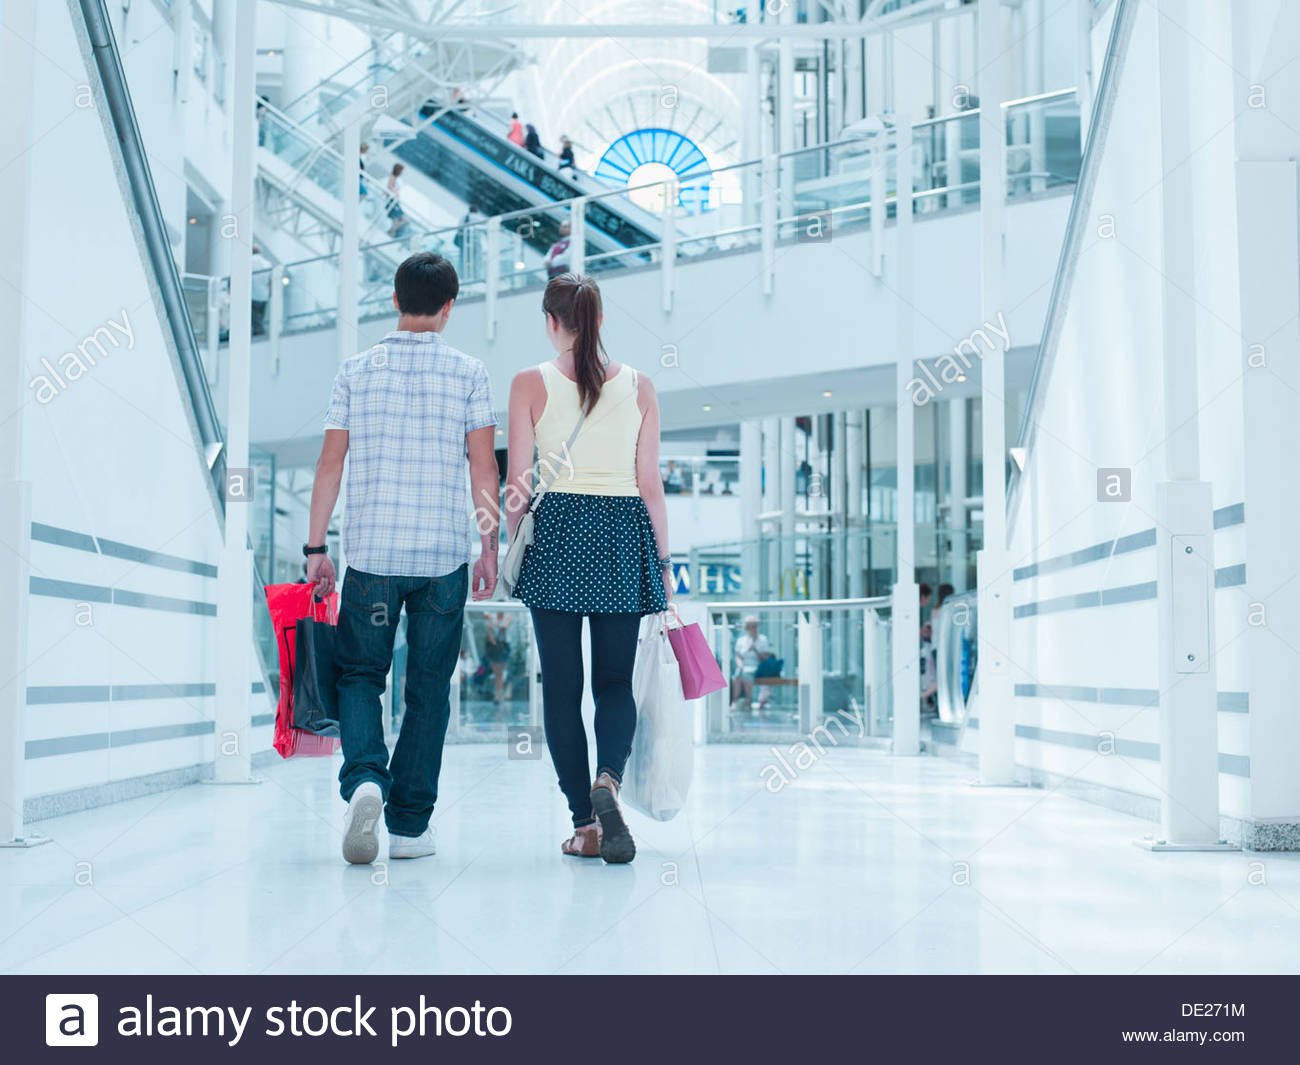 Couple carrying shopping bags in mall - Stock Image